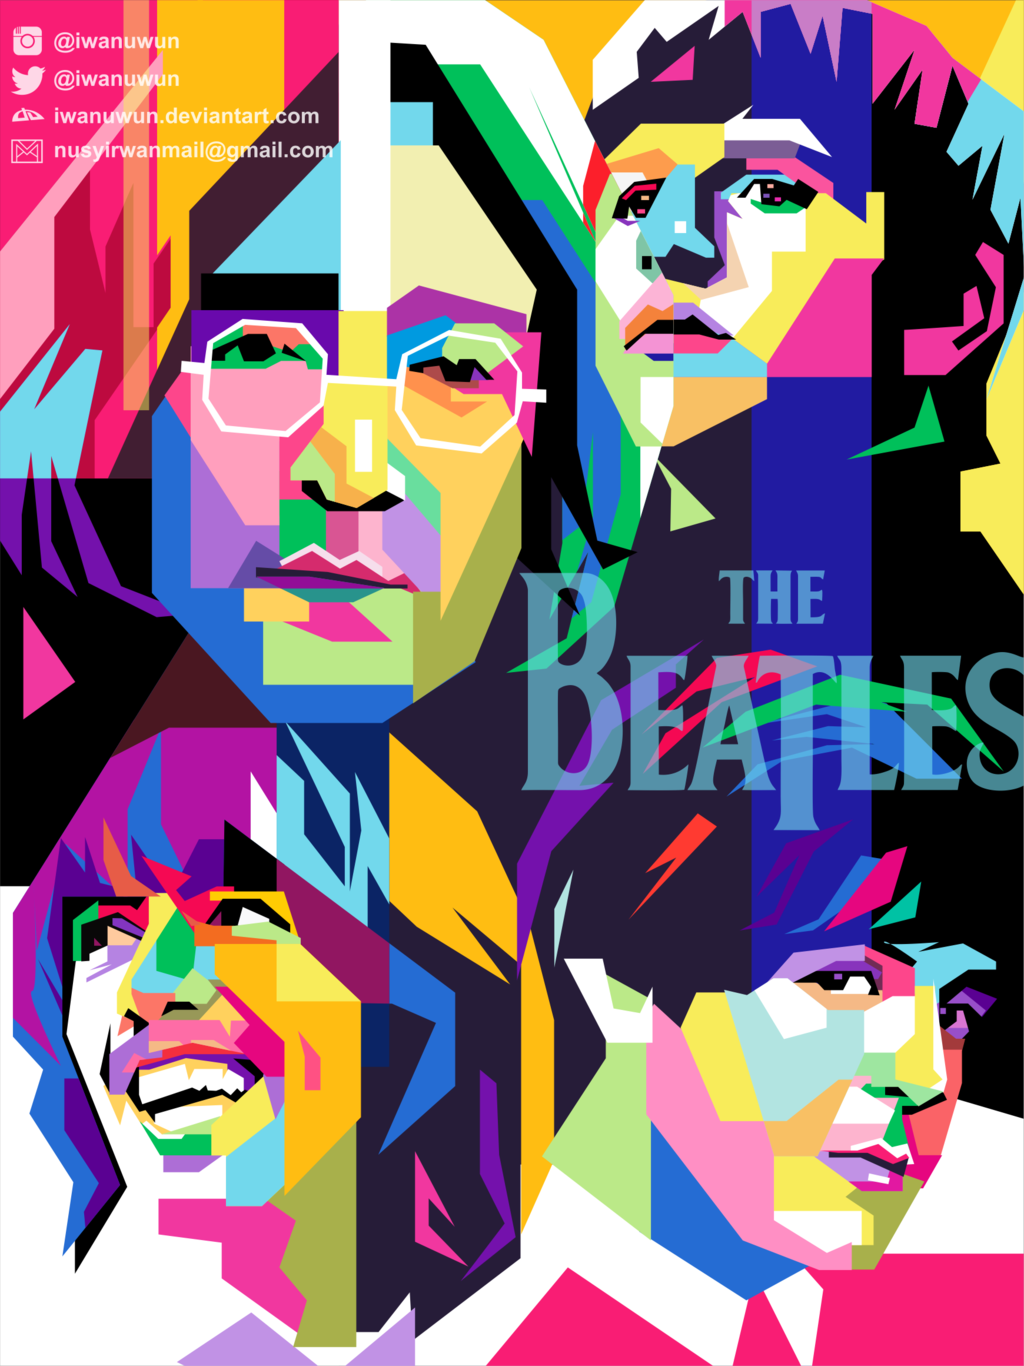 Cuadros Jorge Arranz The Beatles On Wpap By Iwanuwun On Deviantart Personajes